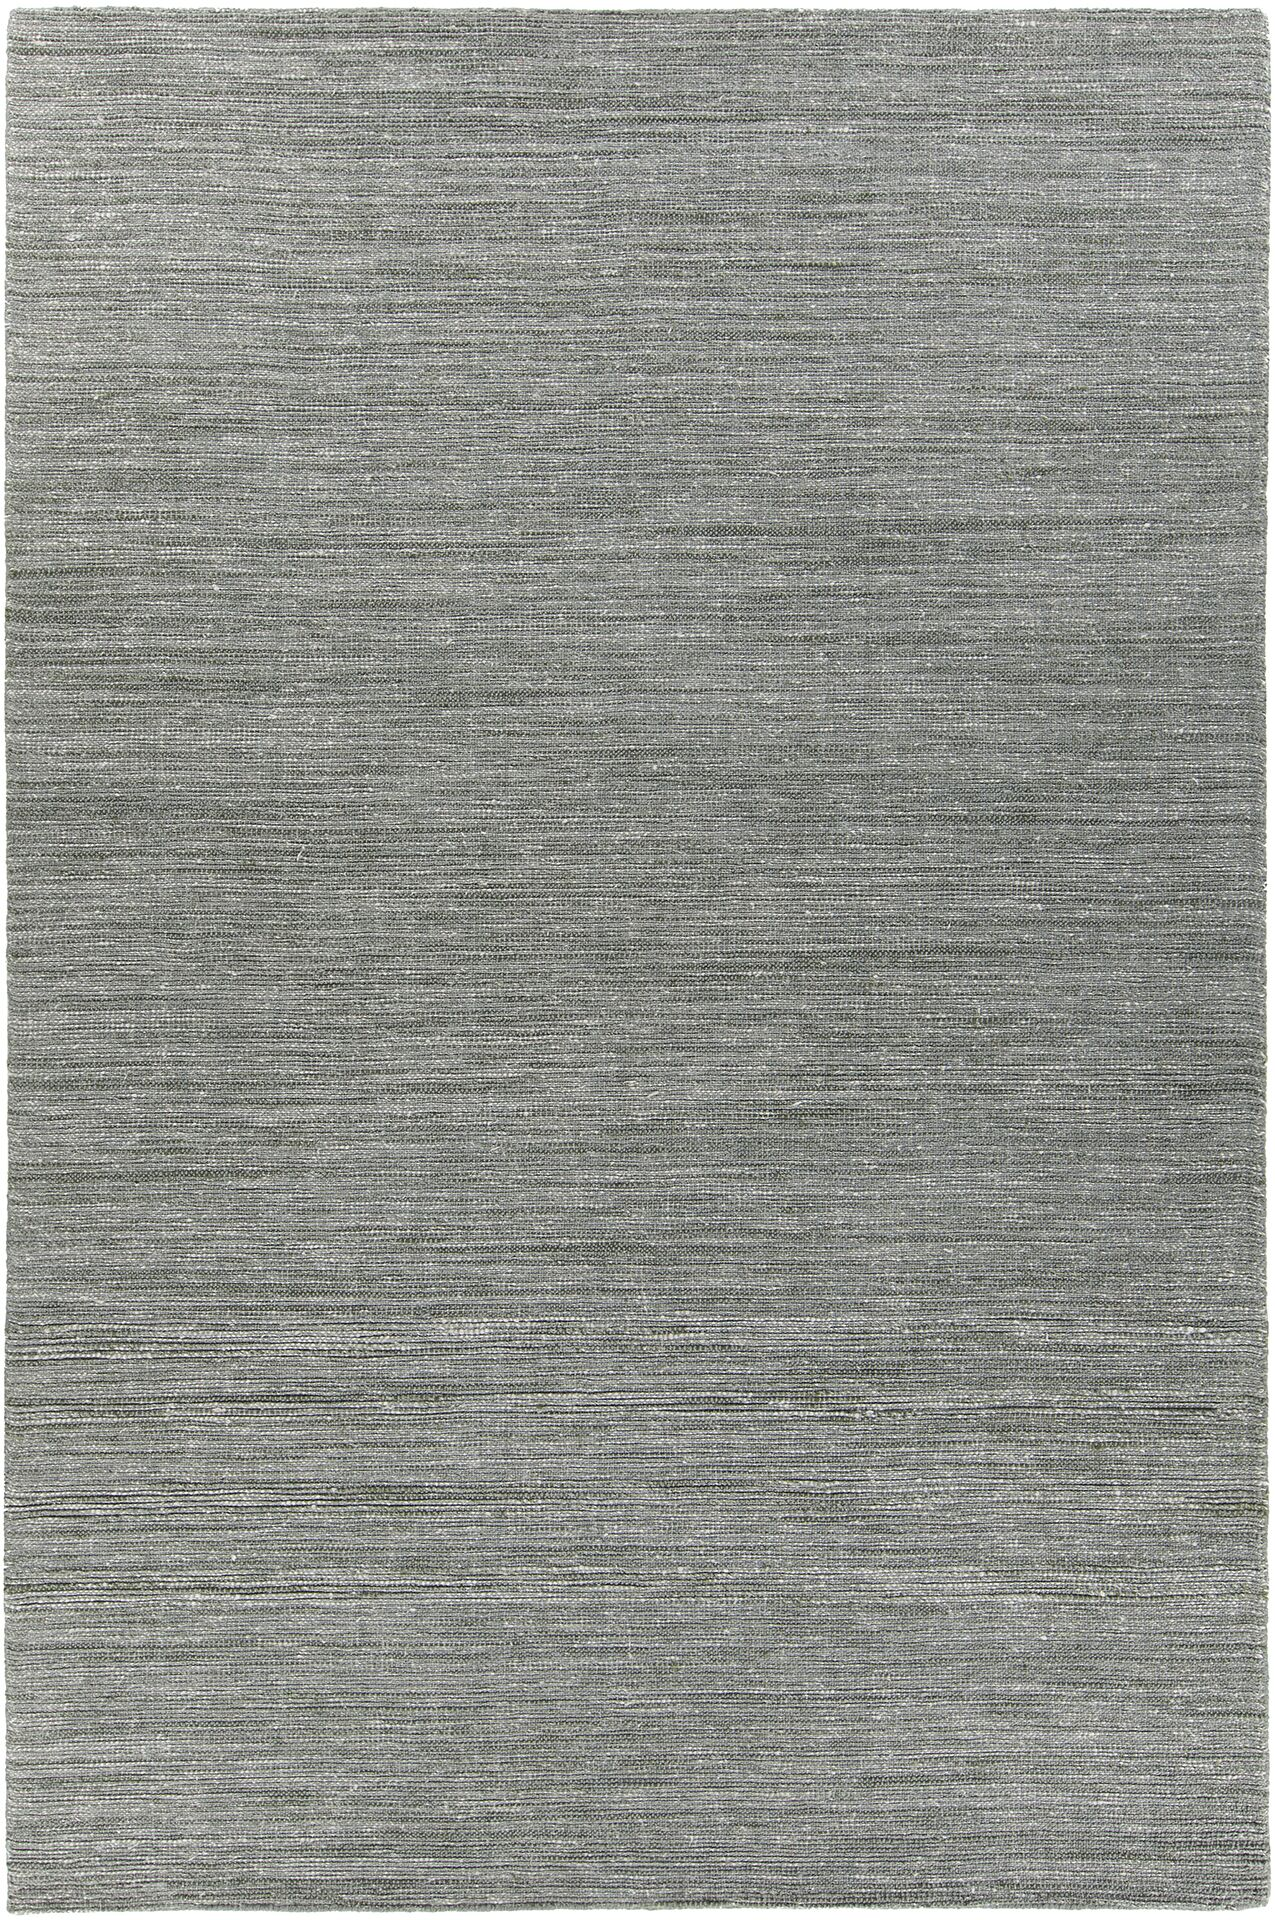 Laxford Hand-Woven Gray/Green Area Rug Rug Size: 5' x 7'6